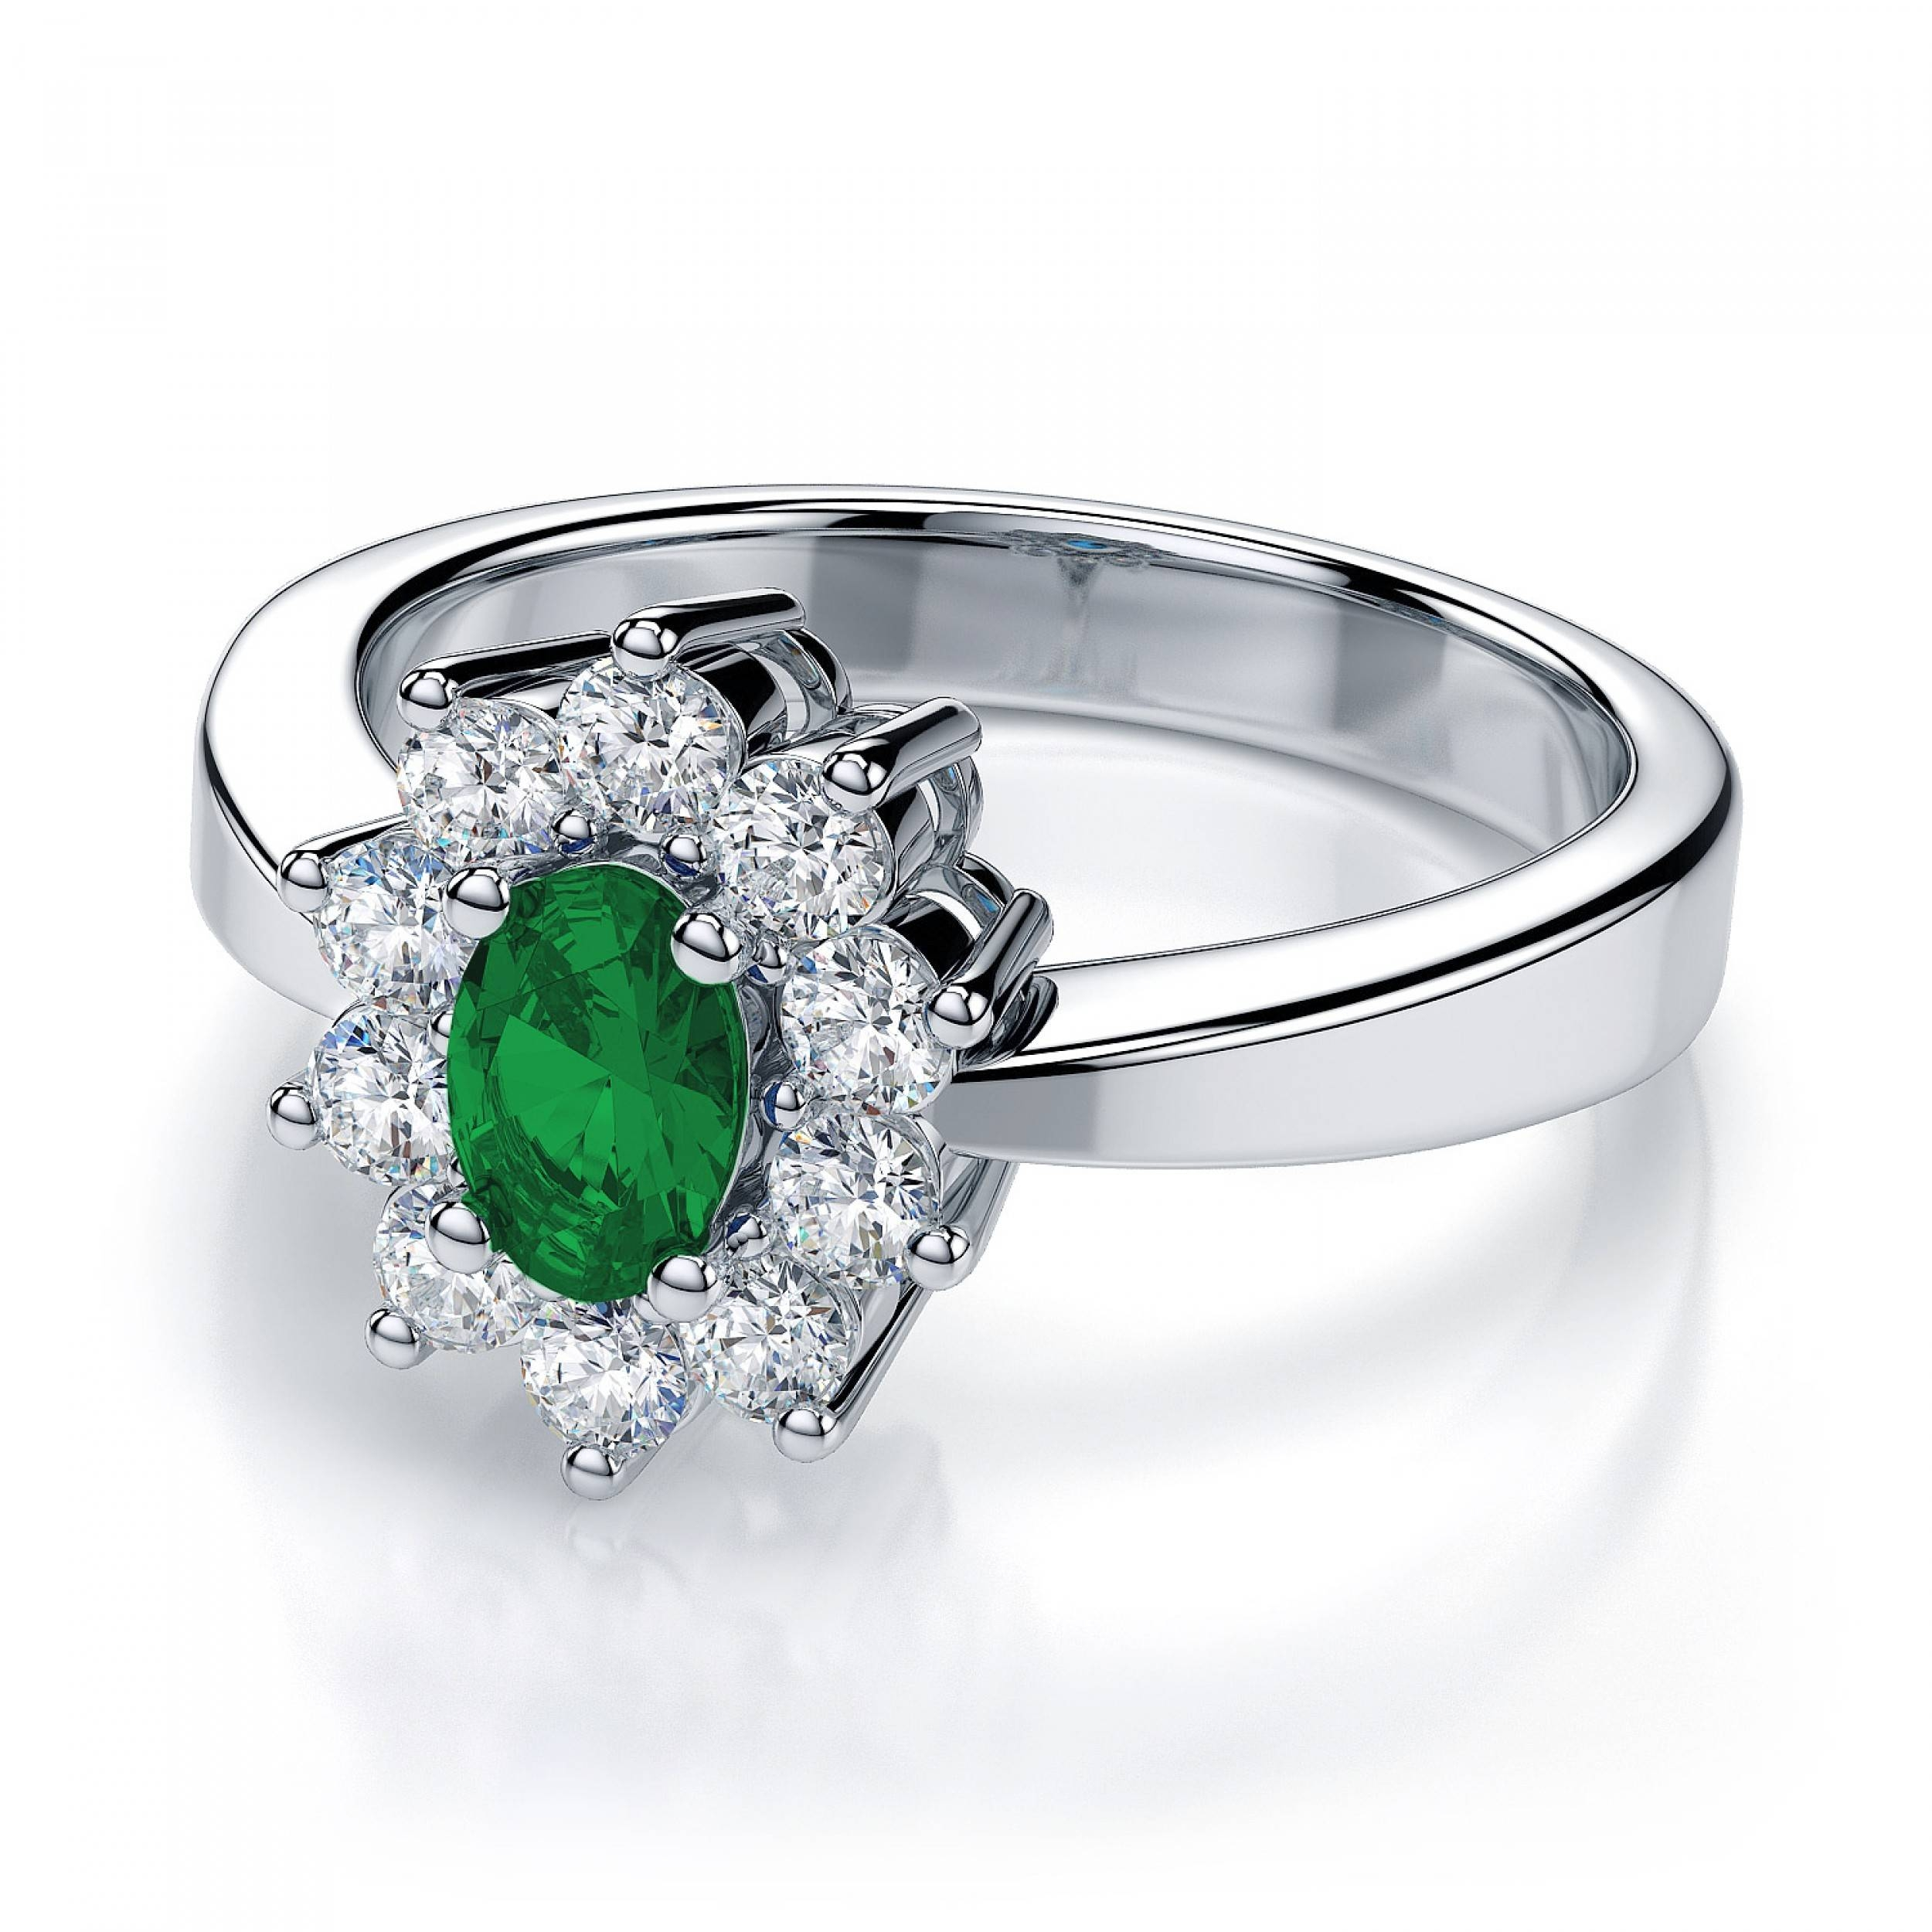 Lab Created Emerald Gemstone And Diamond Ring In 18K White Gold With Regard To Oval Emerald Engagement Rings (View 4 of 15)